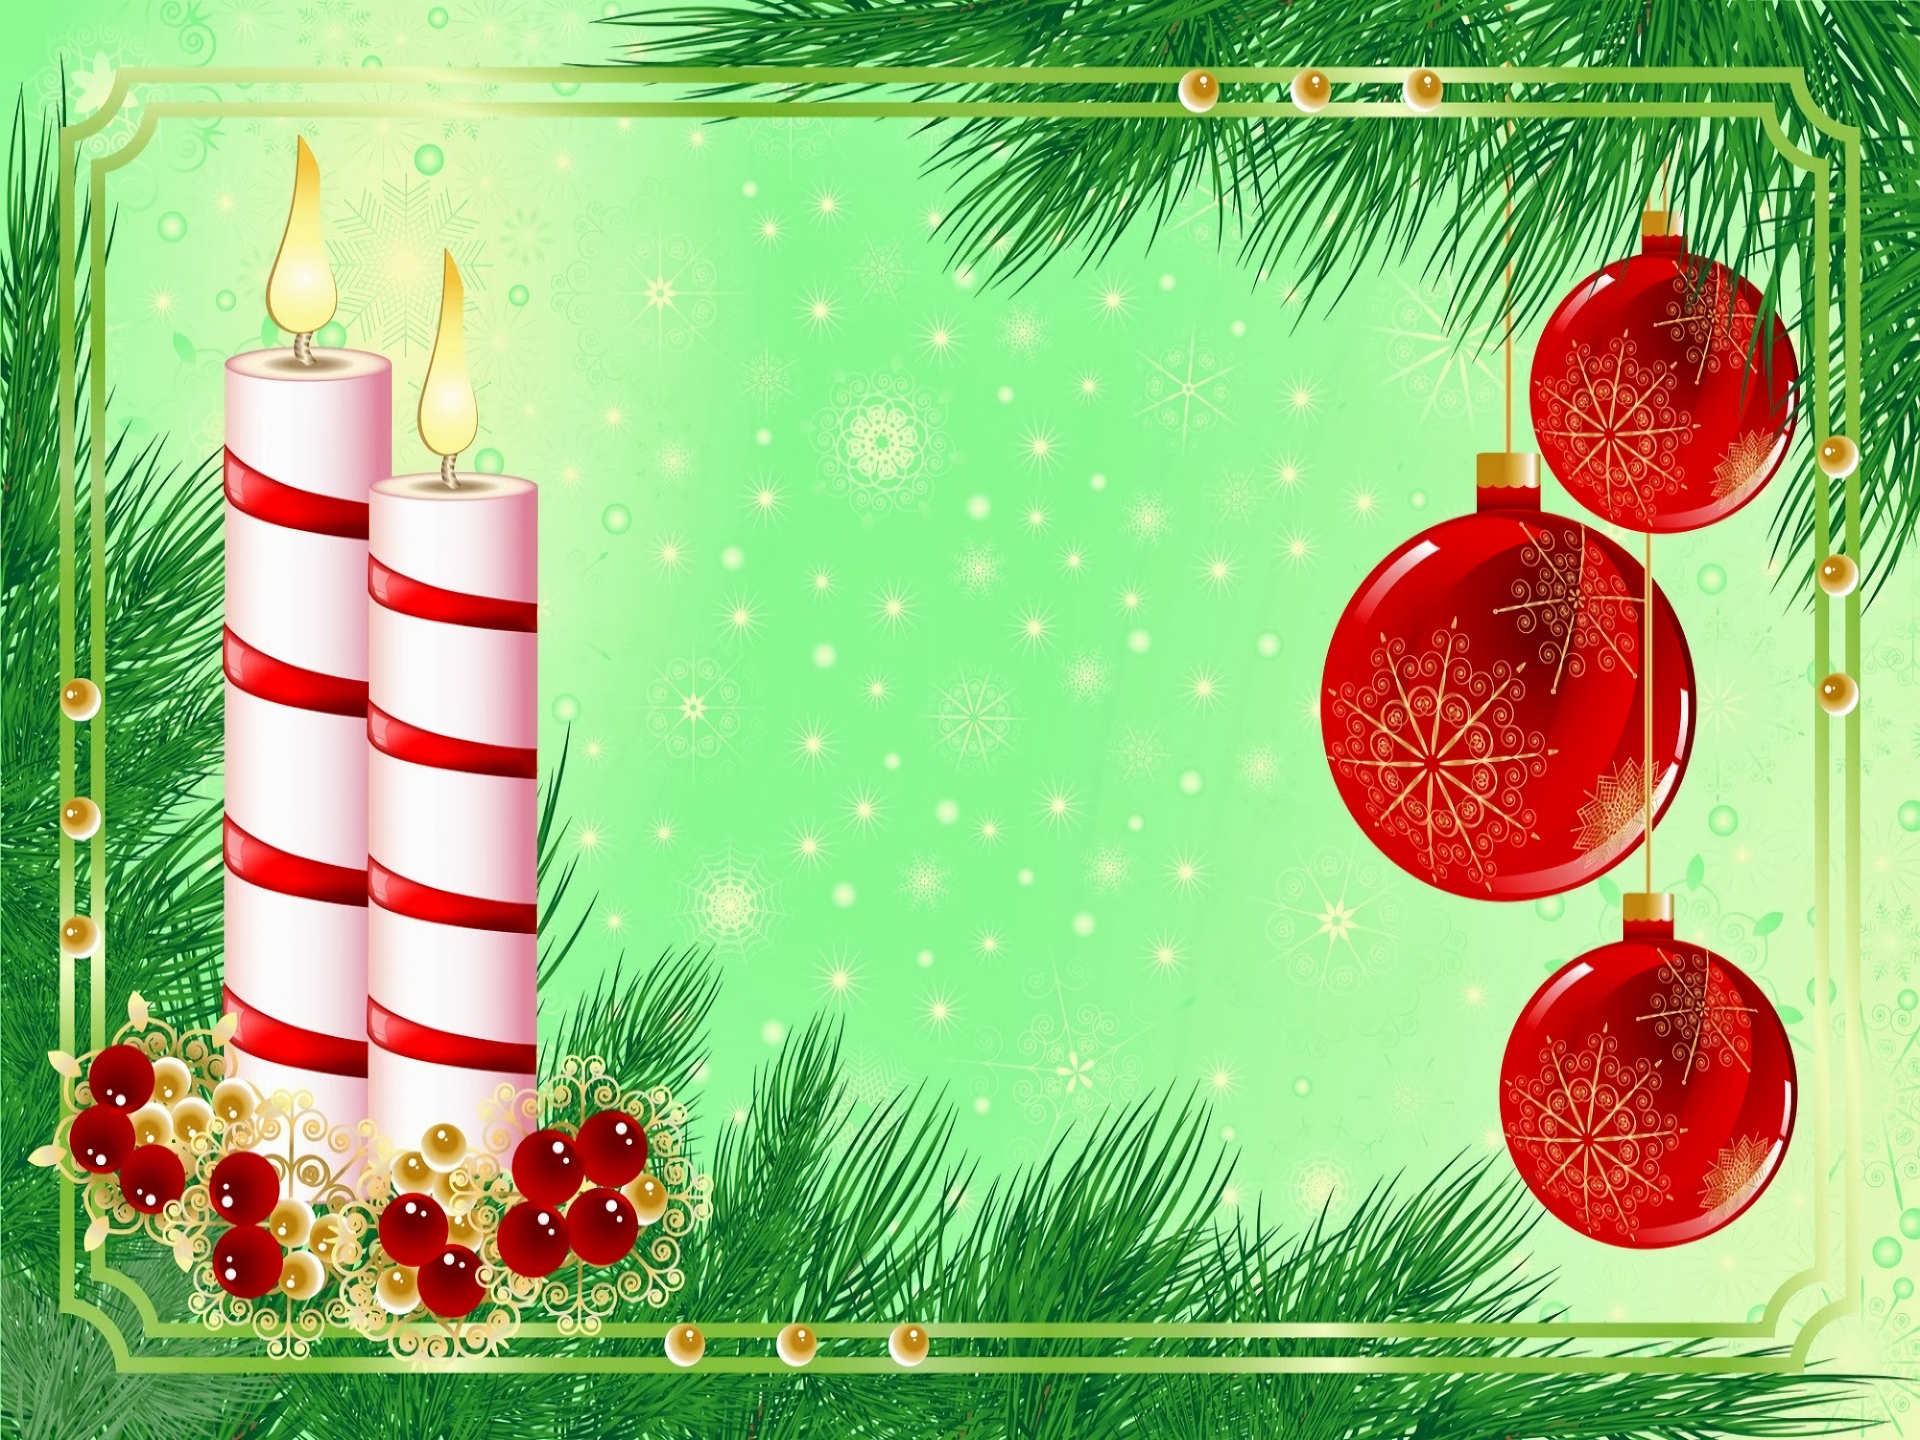 Bauble Candle Christmas Decoration Green 1920x1440